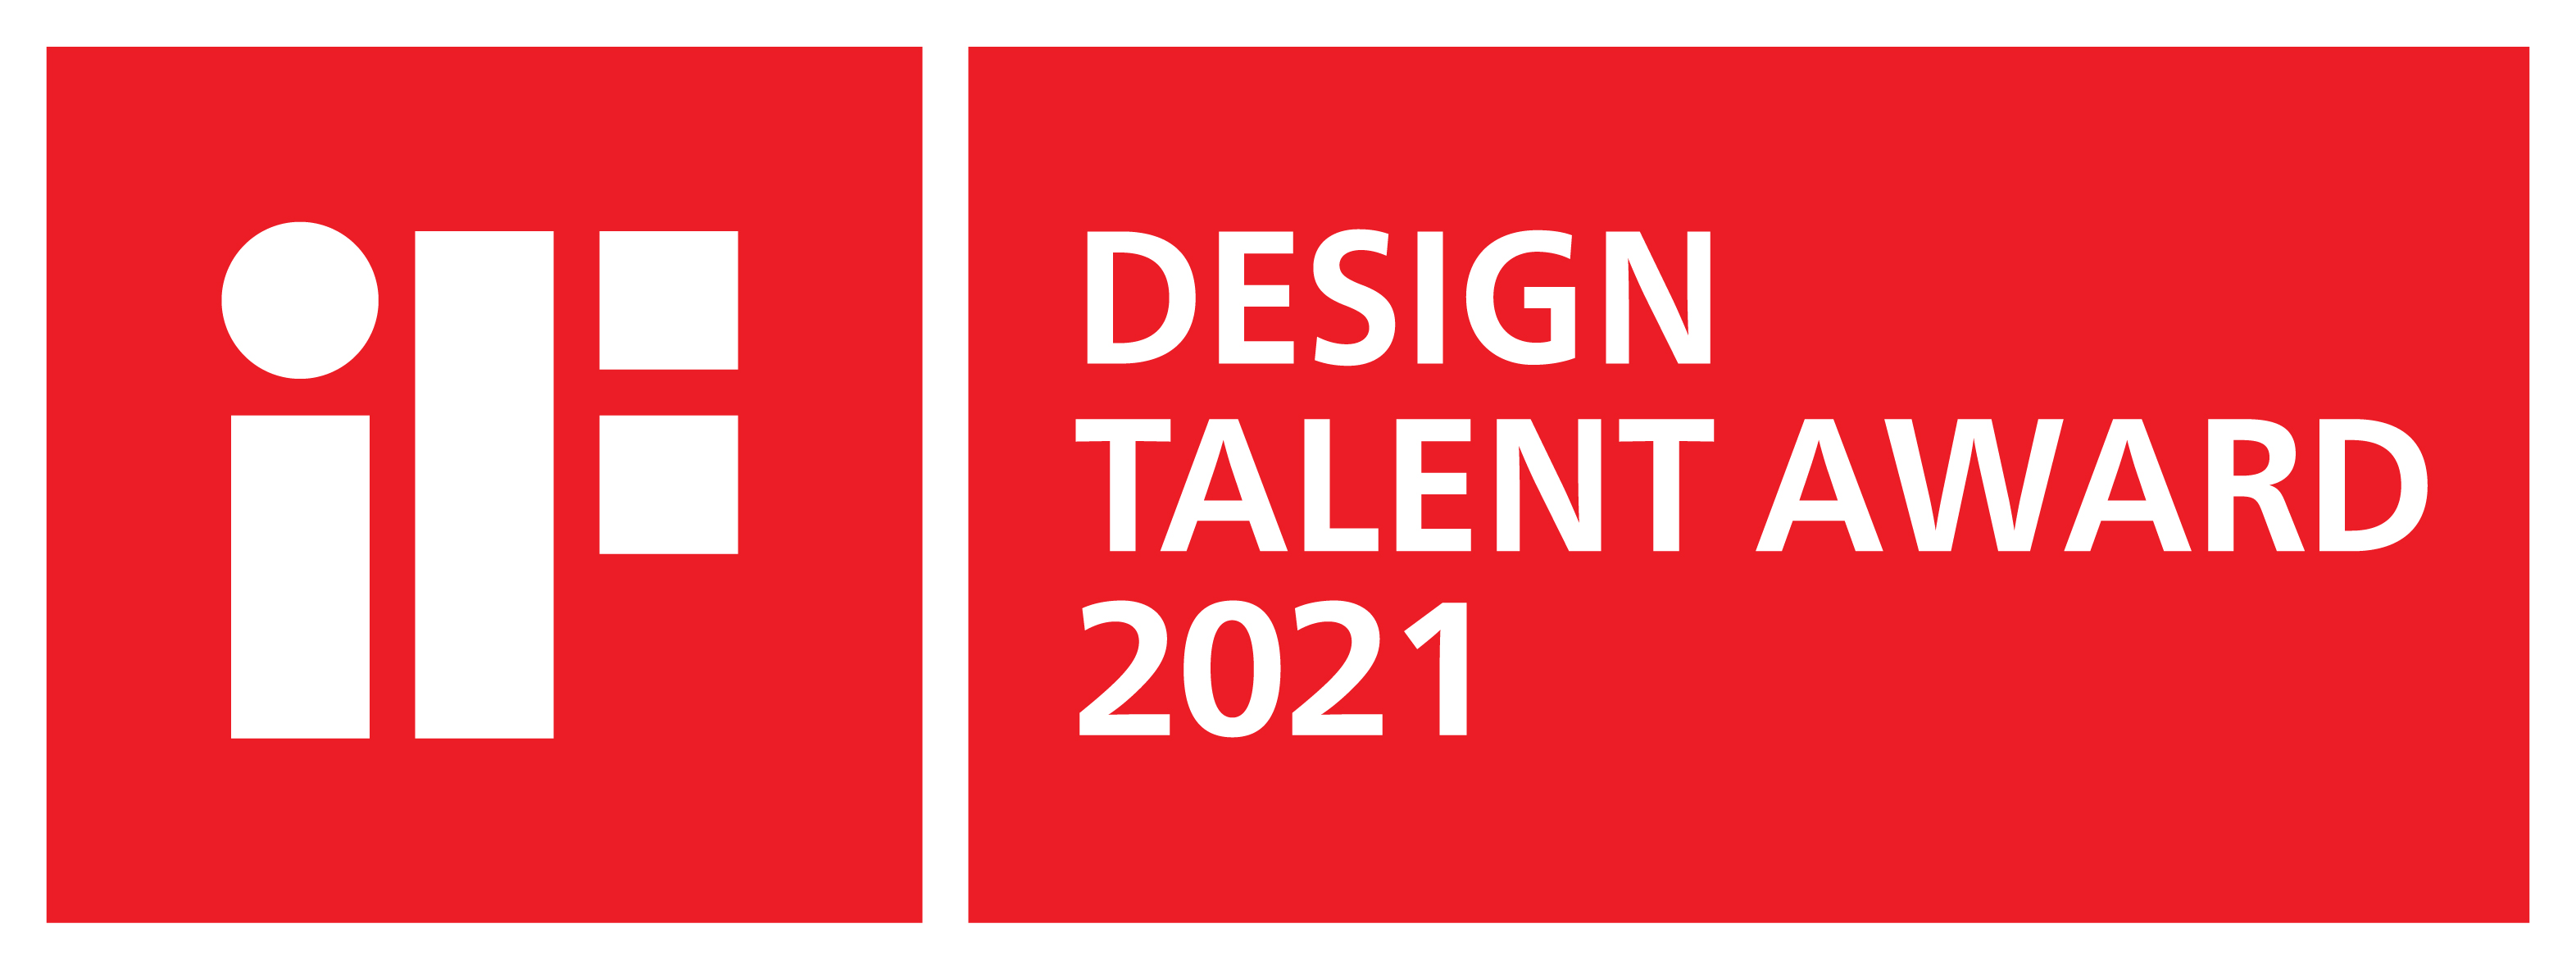 iF DESIGN TALENT AWARD_01 2021